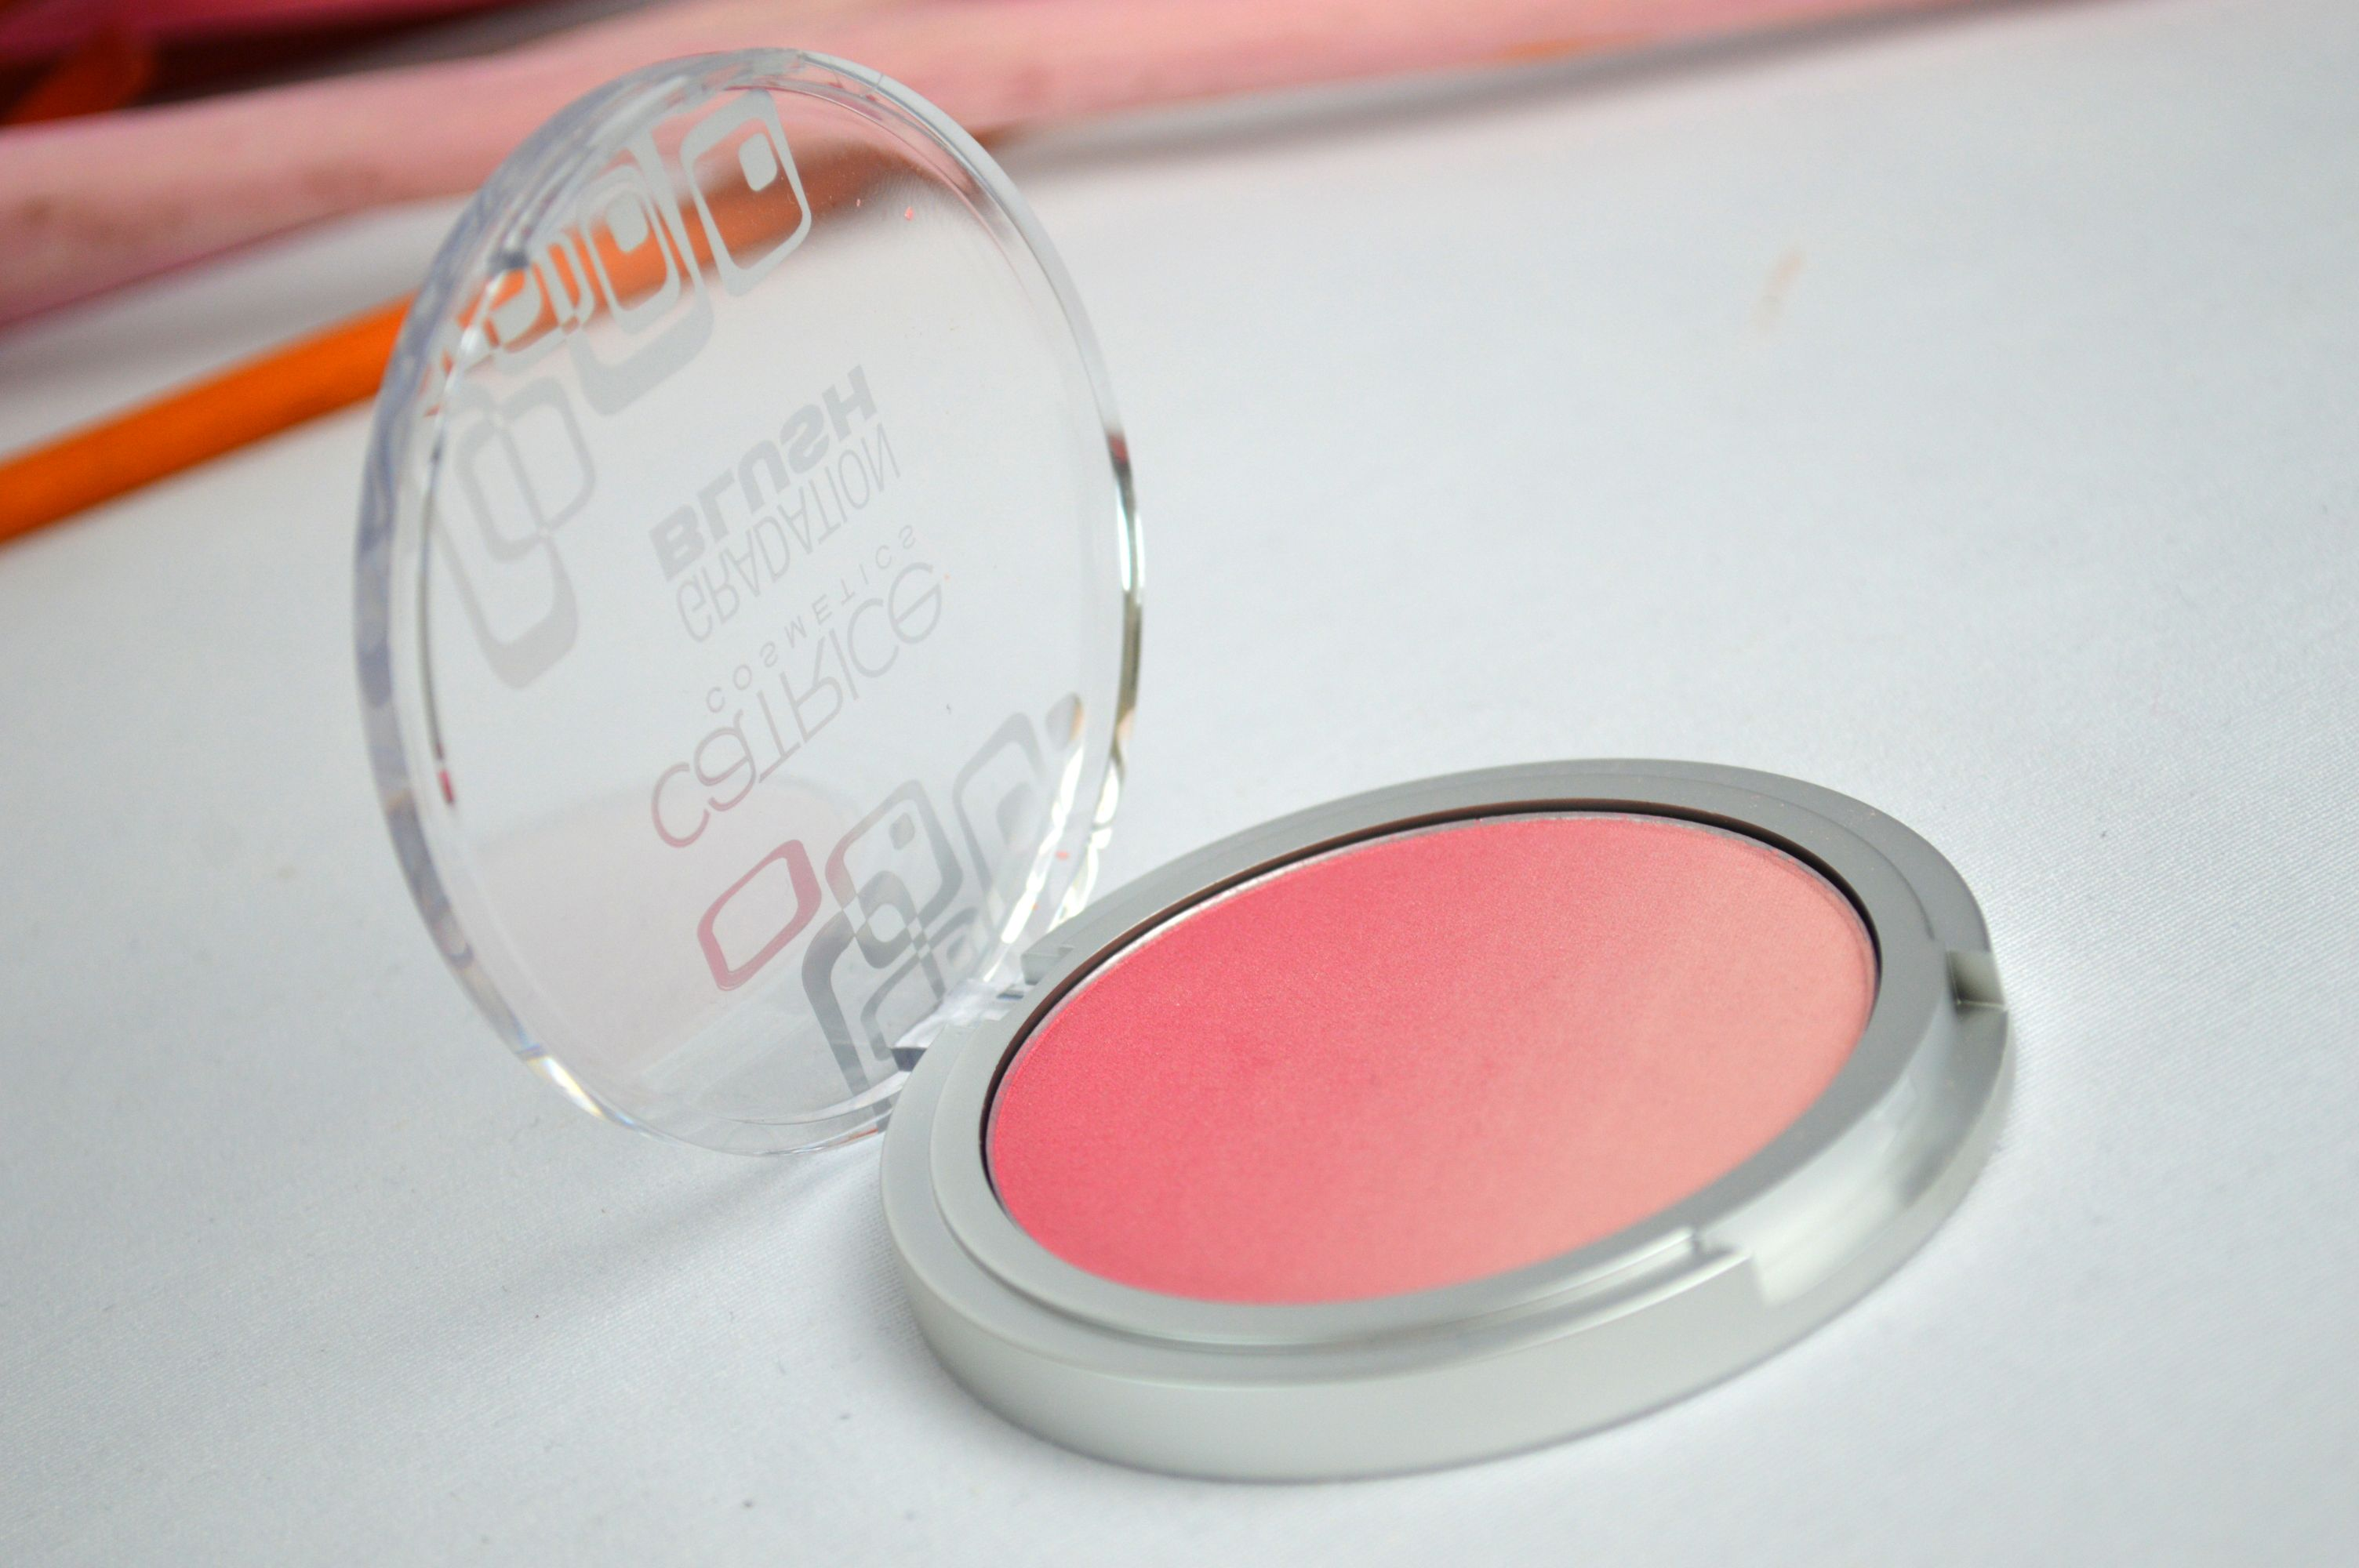 Catrice Gradation Blush Waterloo Sunrise aus der Crème Fresh LE